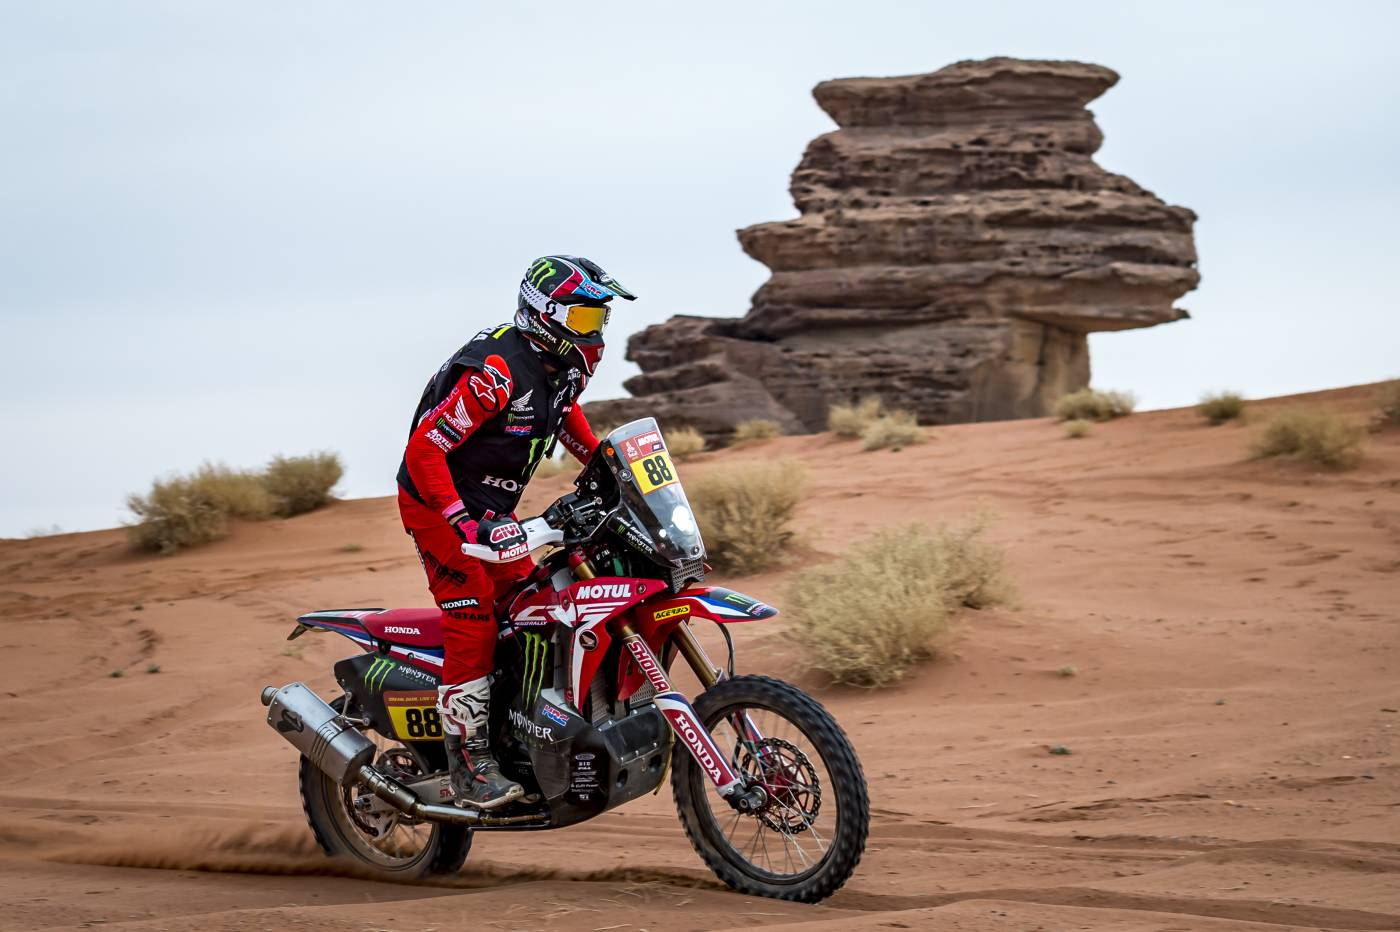 Kevin Benavides takes the command of the Dakar Rally with two days to go